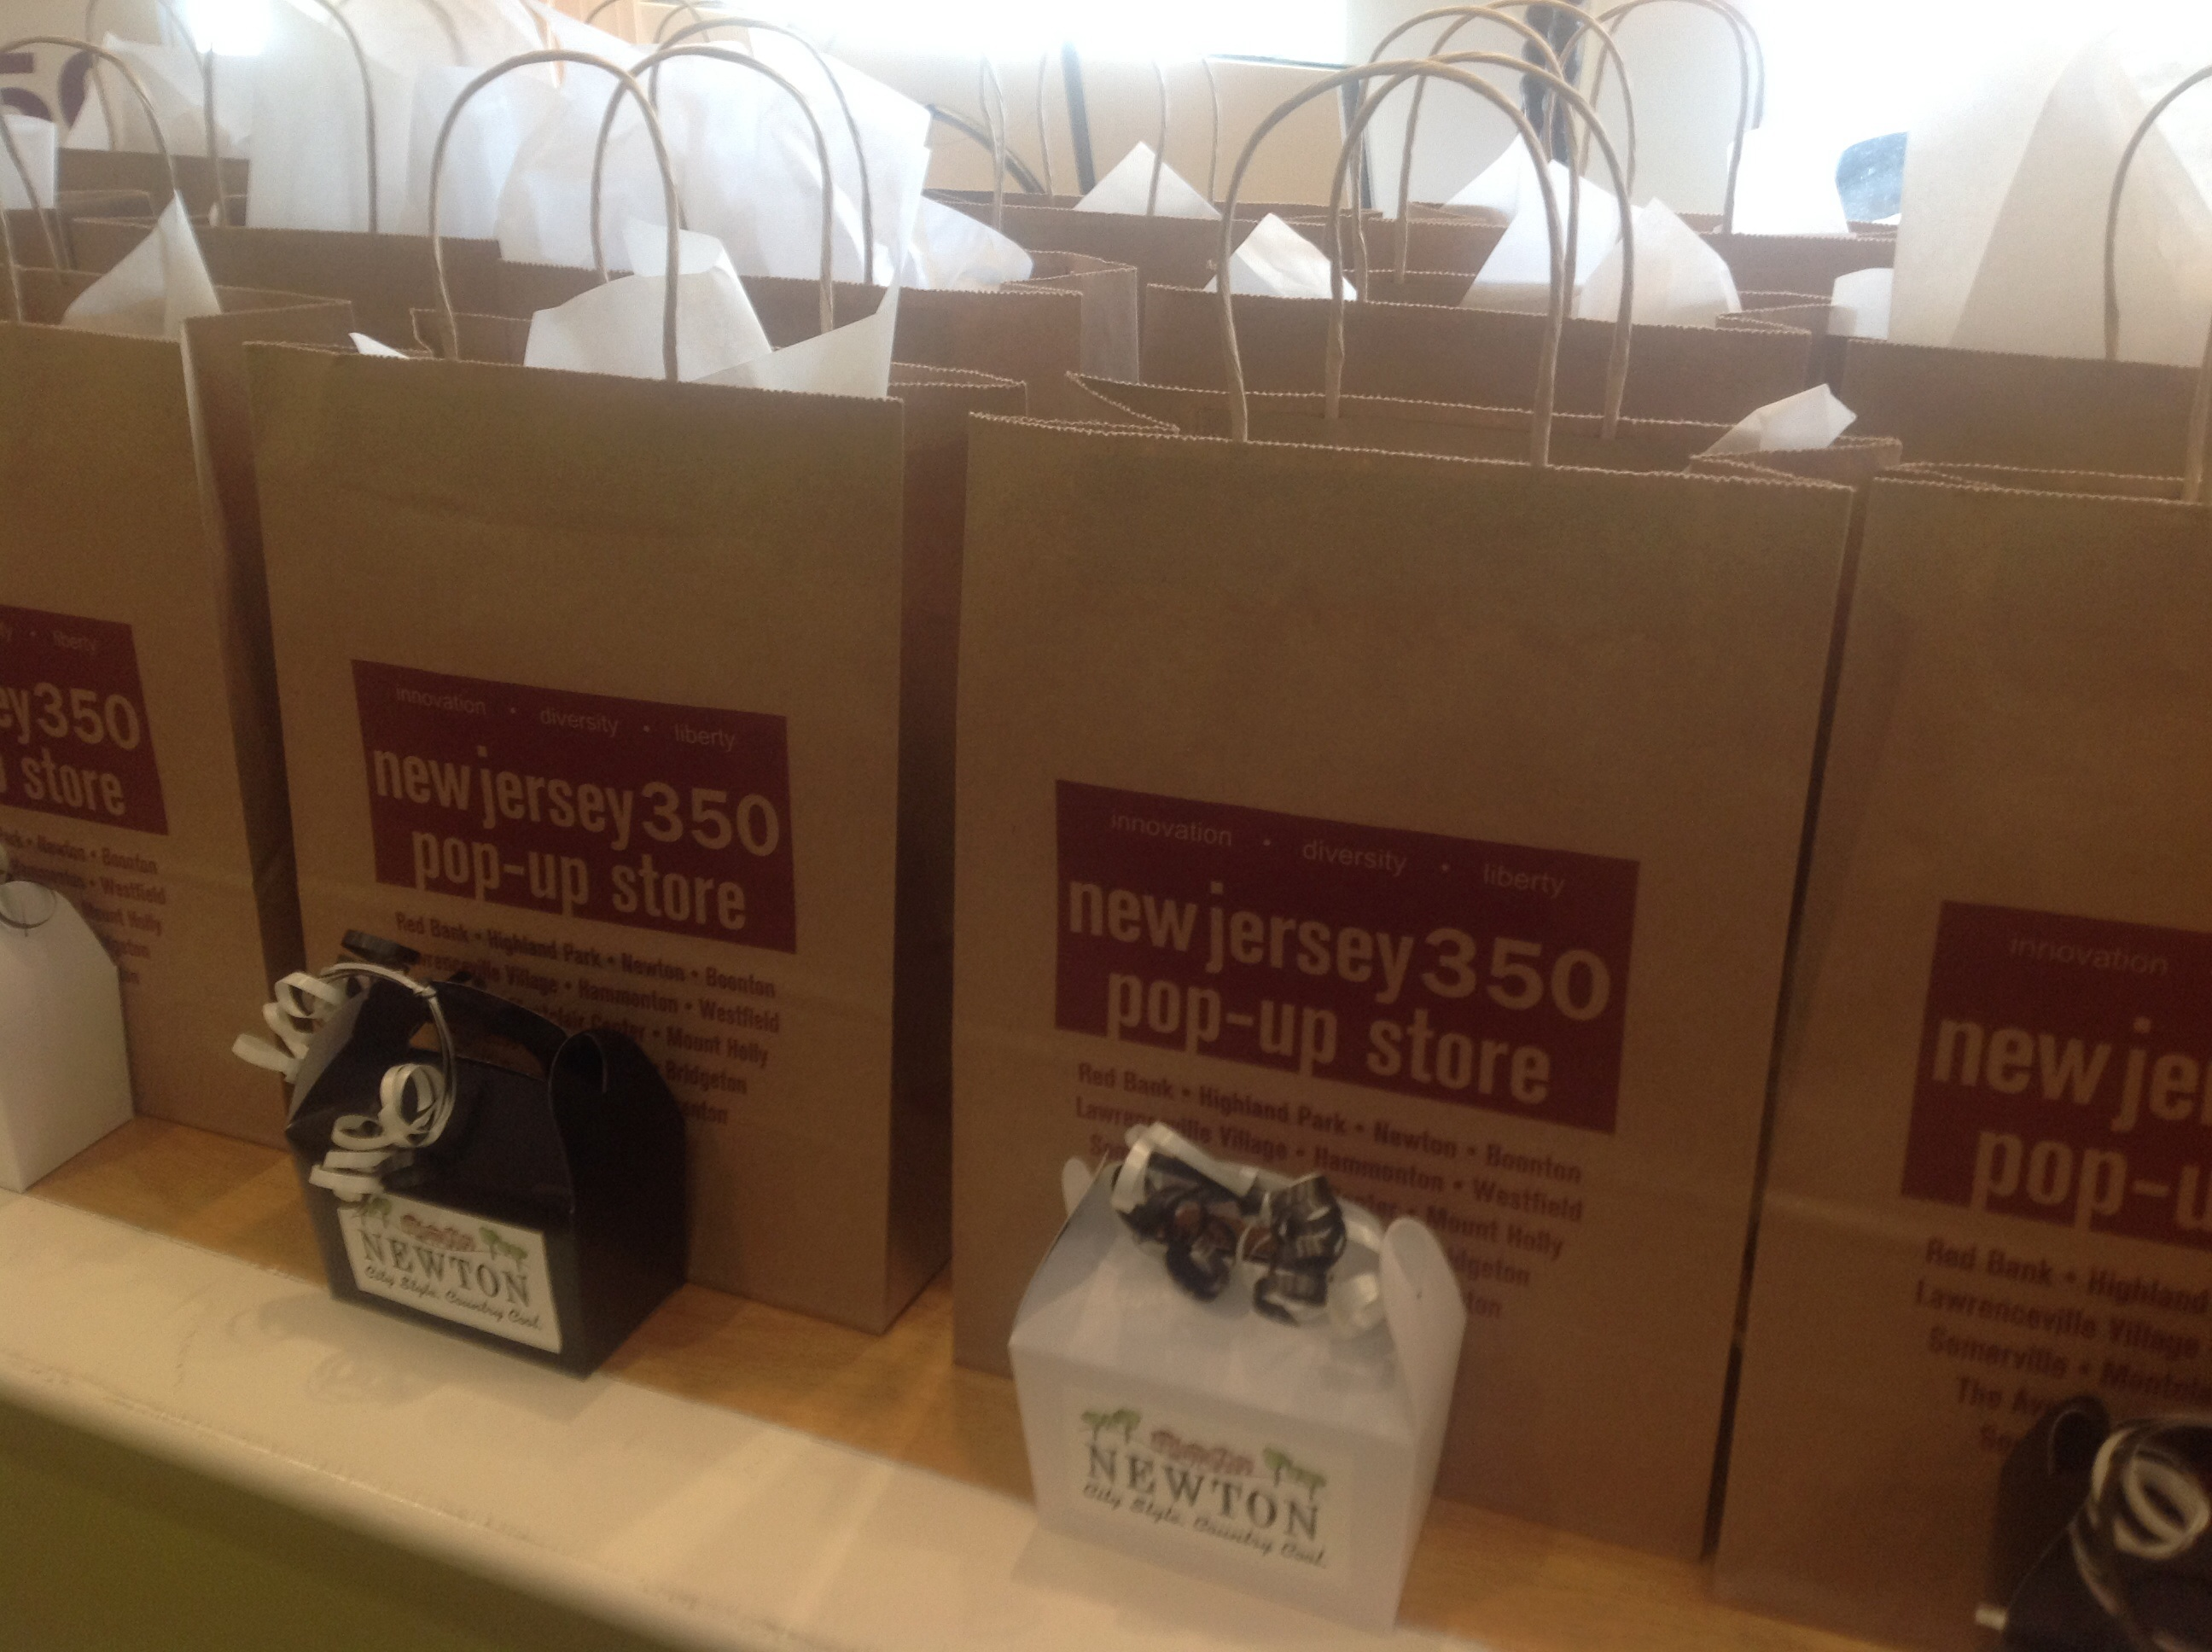 Goody bags at the celebration.